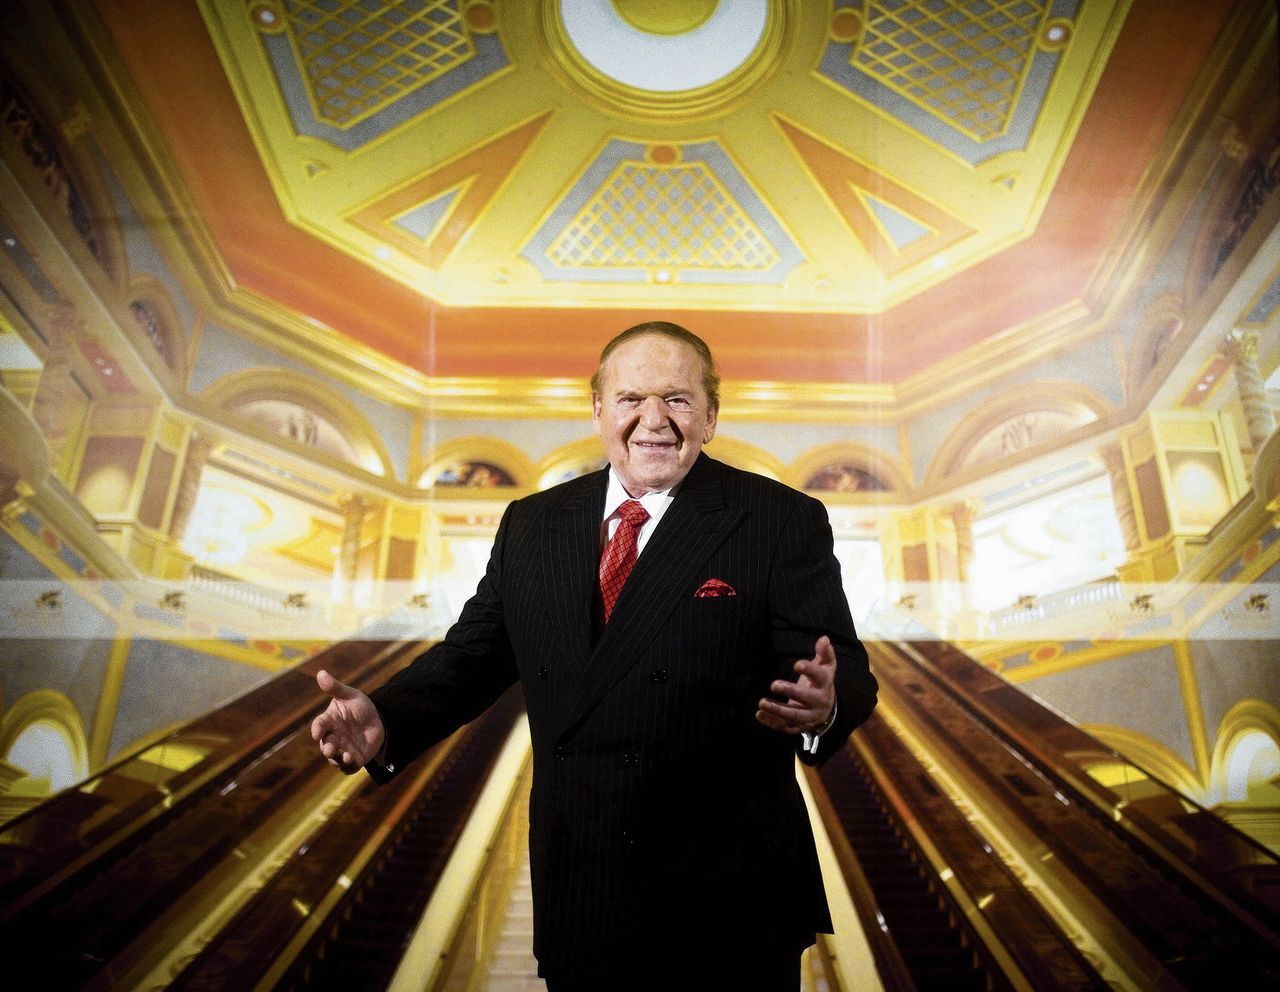 Casinokeizer Shelden Adelson in 2007 en later een van de grote financiers van Trumps campagne.